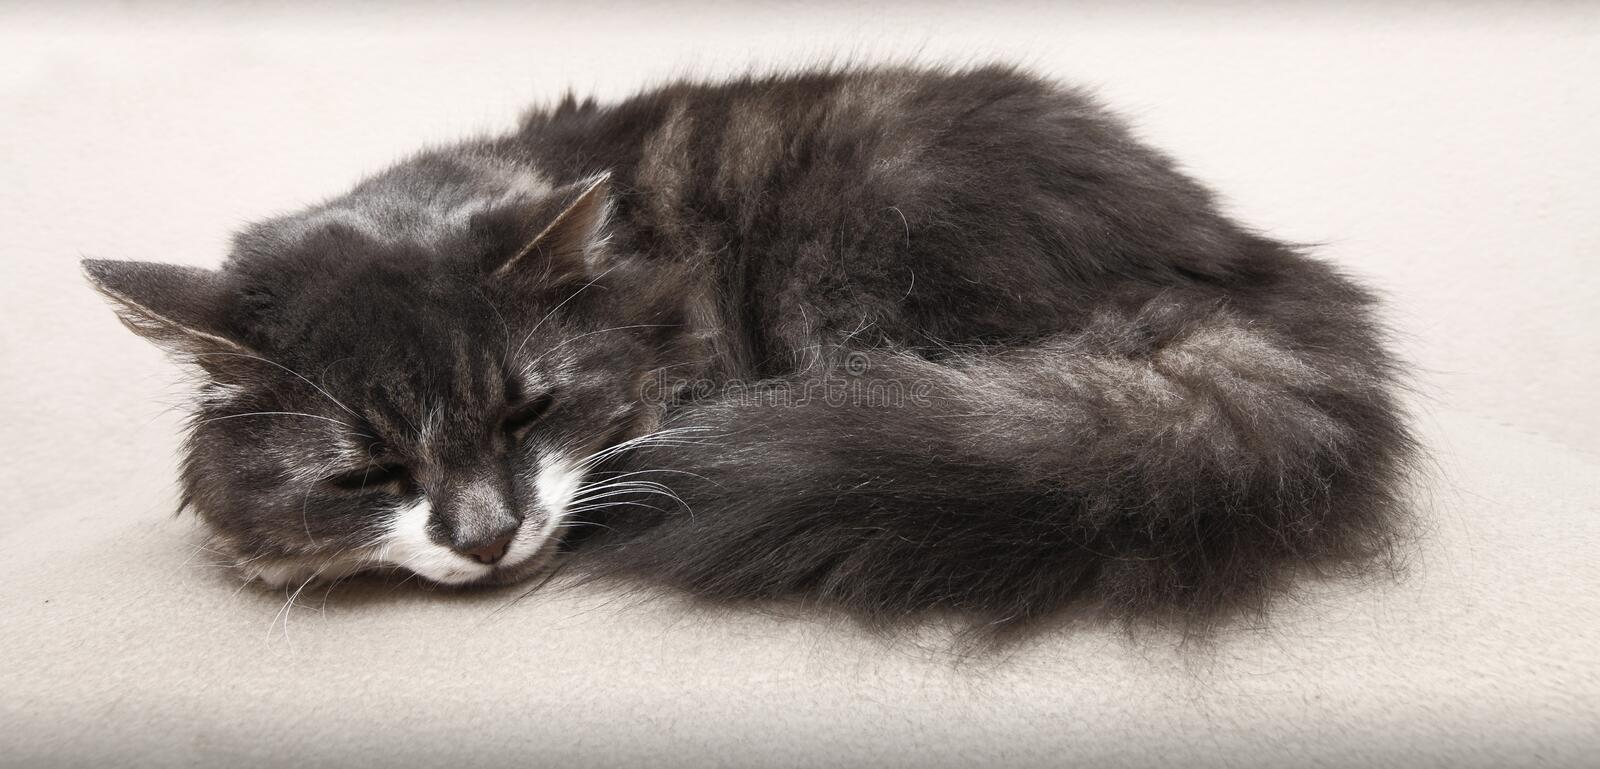 Download Sleeping cat stock image. Image of fury, gray, adorable - 28661391